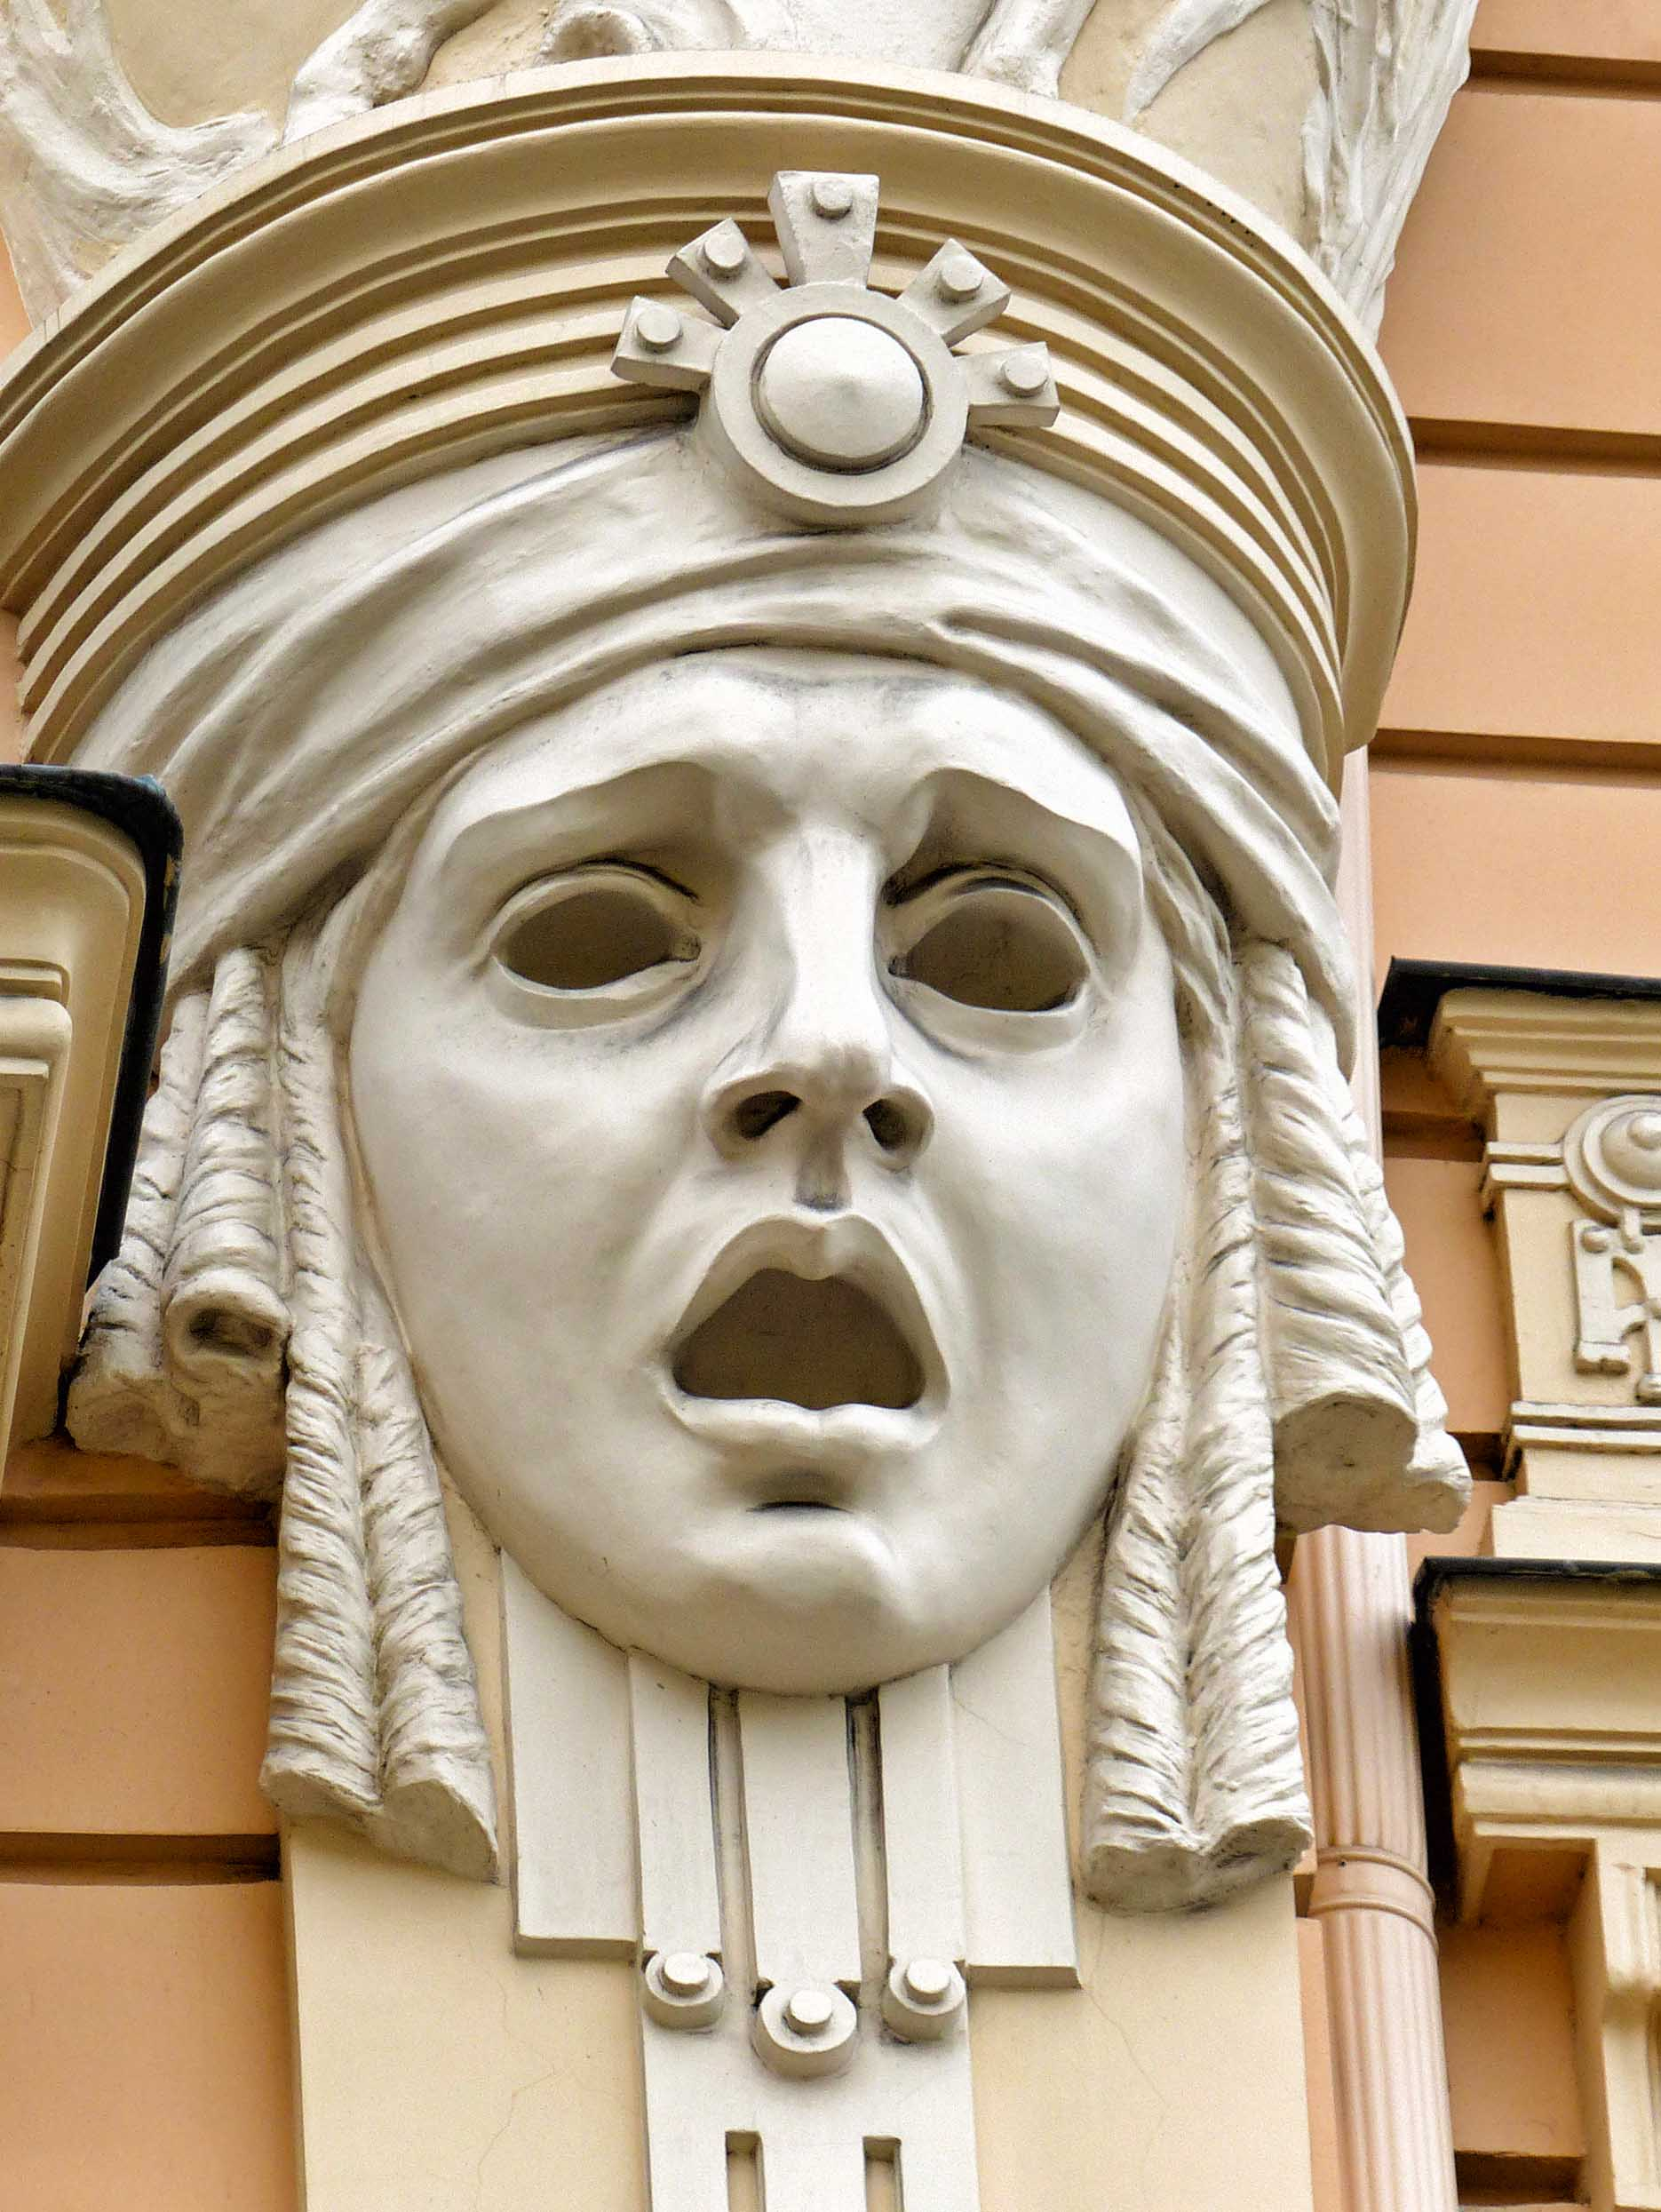 Large stone face on a cream building